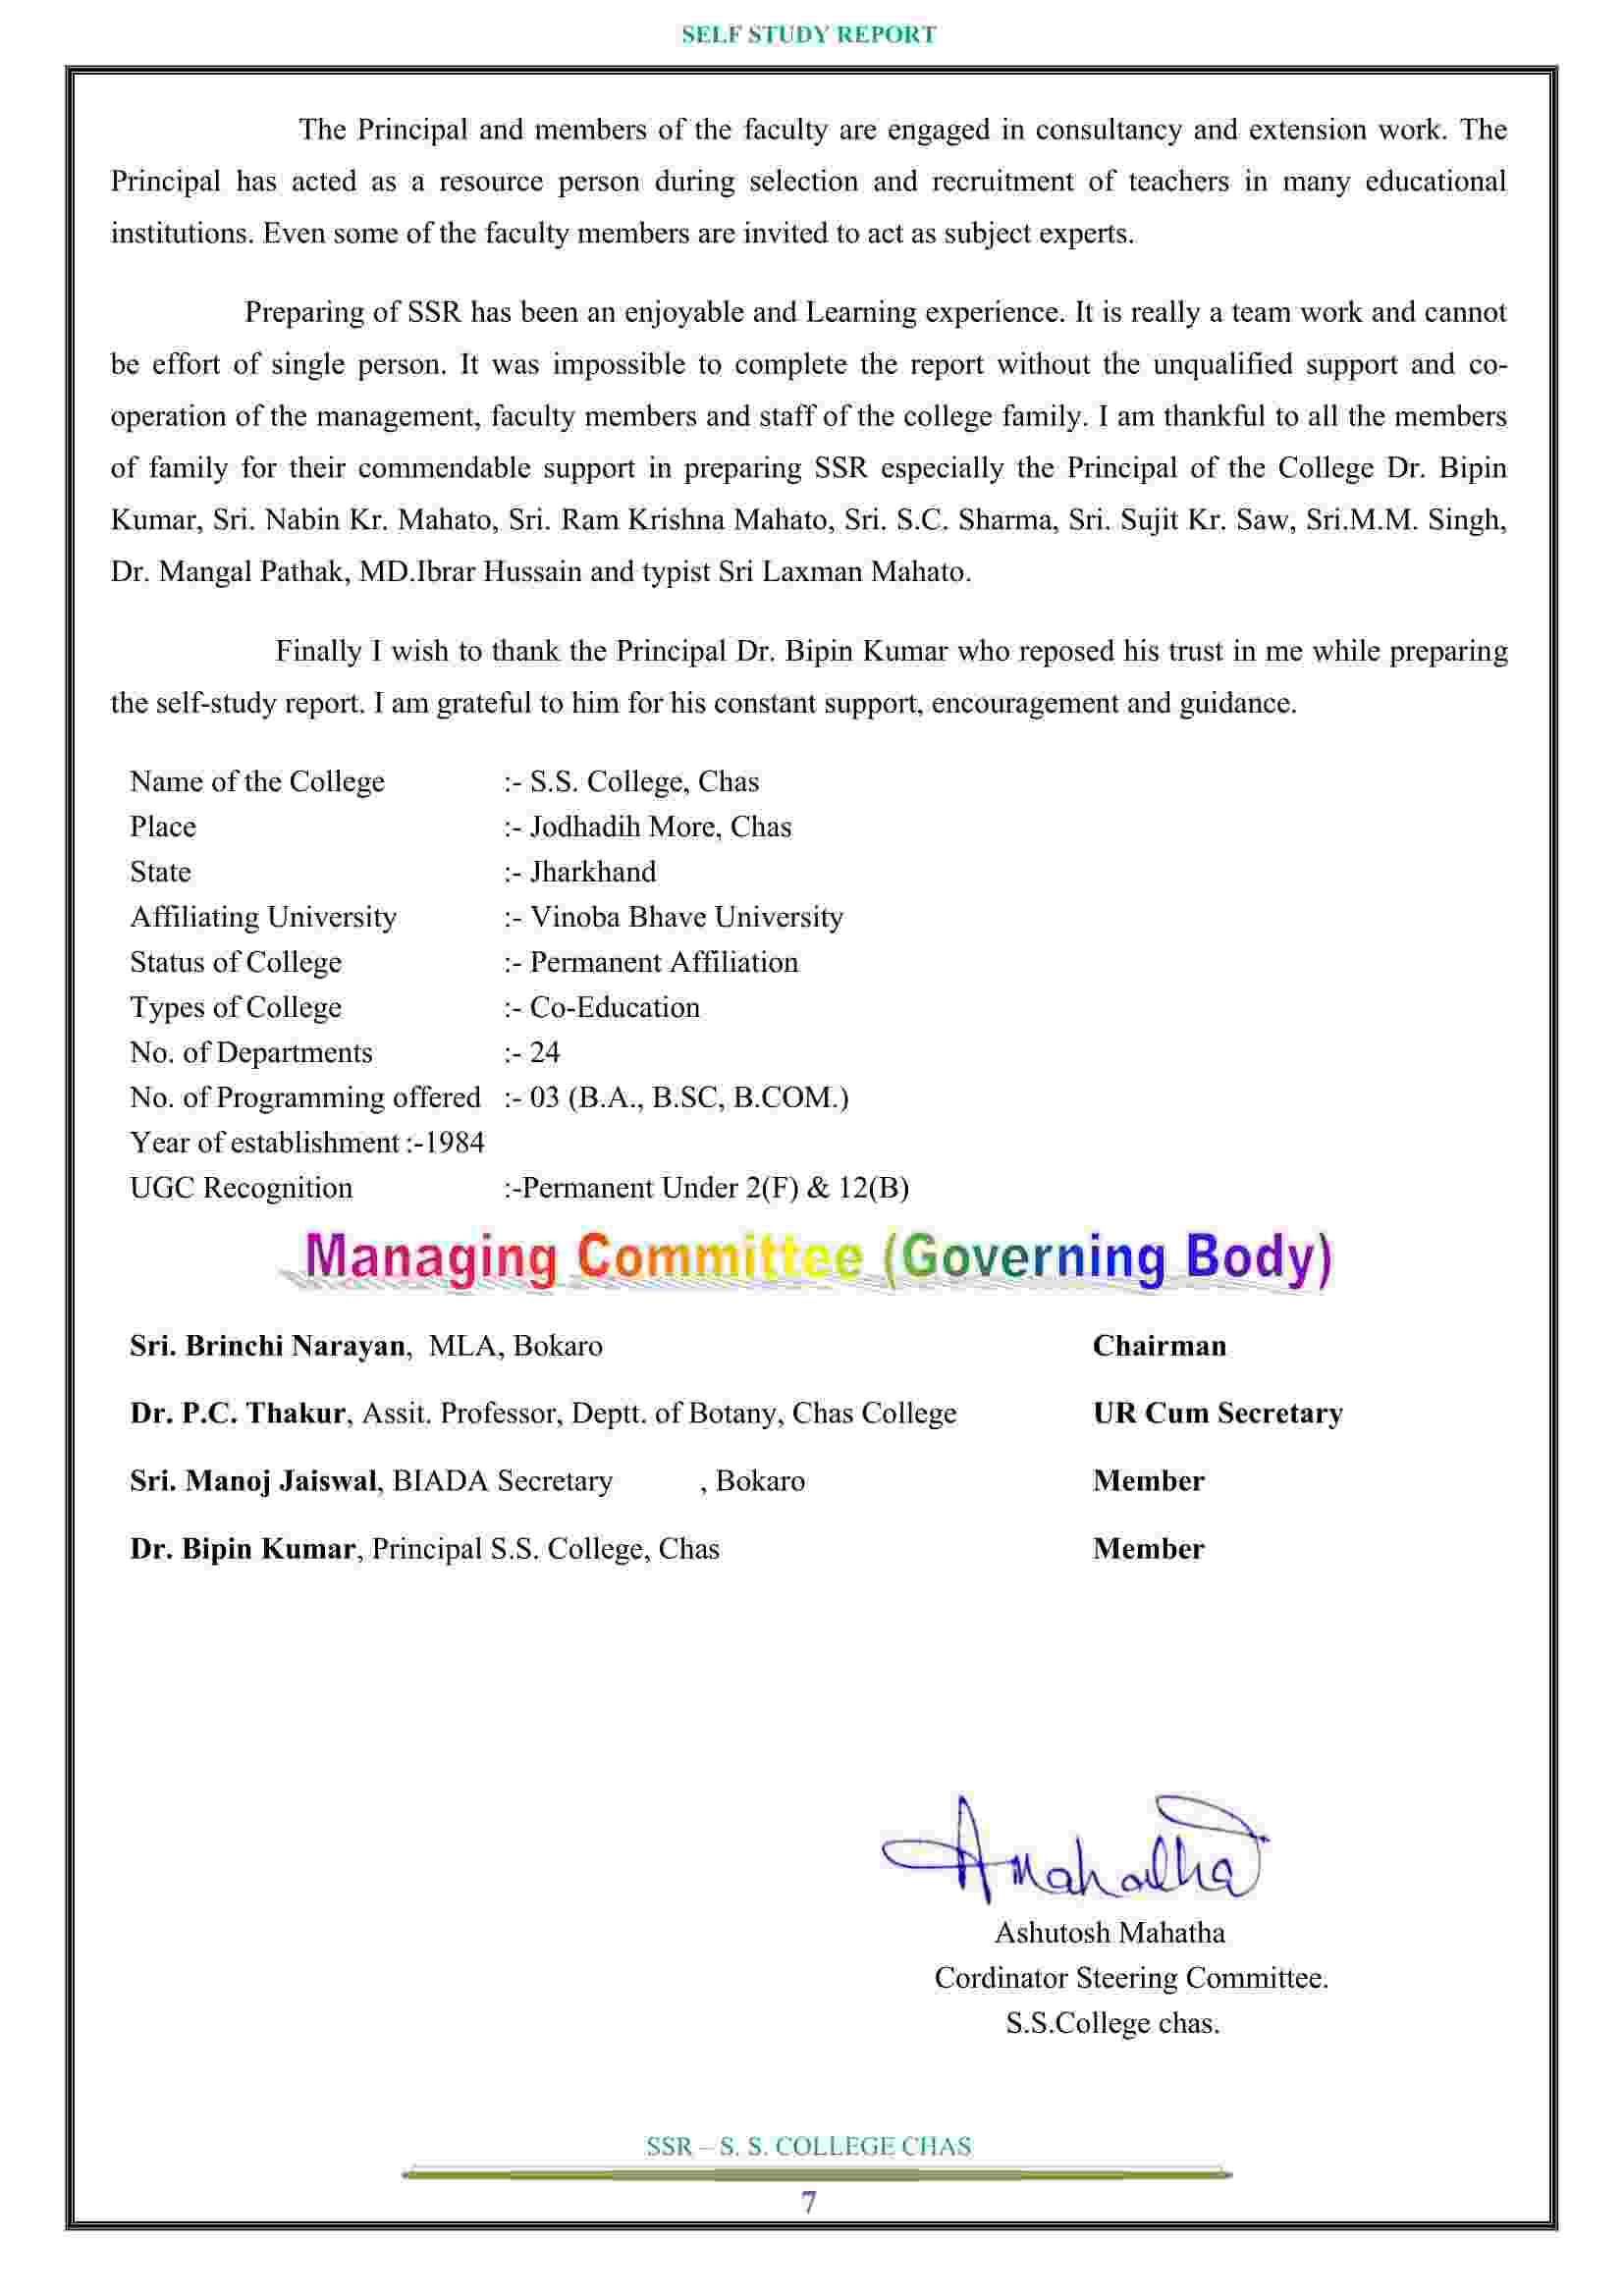 SSR SS College Chas, Bokaro new one-007-compressed